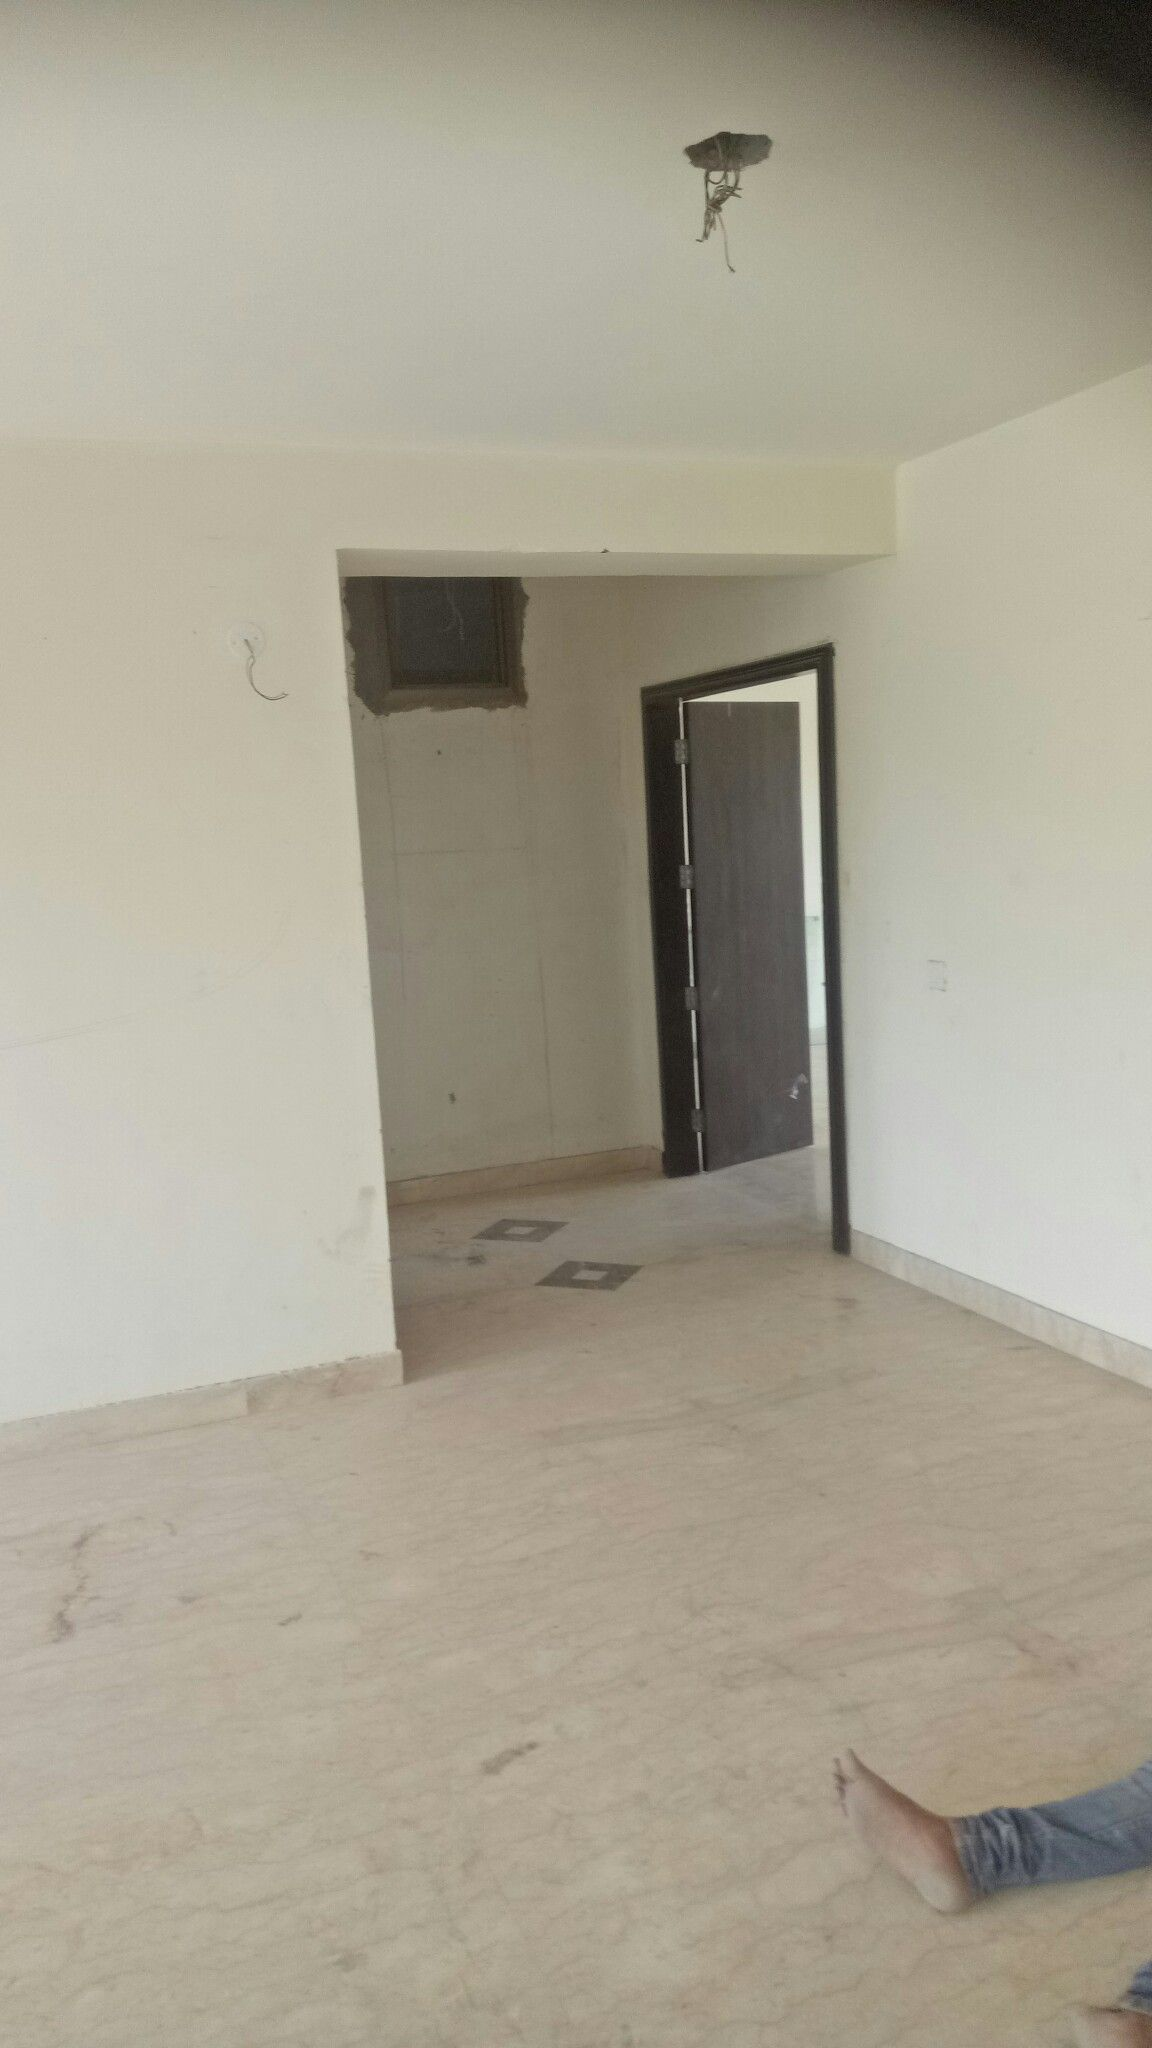 Contact Us 8510070061 Home Office House Showroom Residential Commercial Building Old Renovation Restor Renovation Contractor Remodeling Renovation Renovations